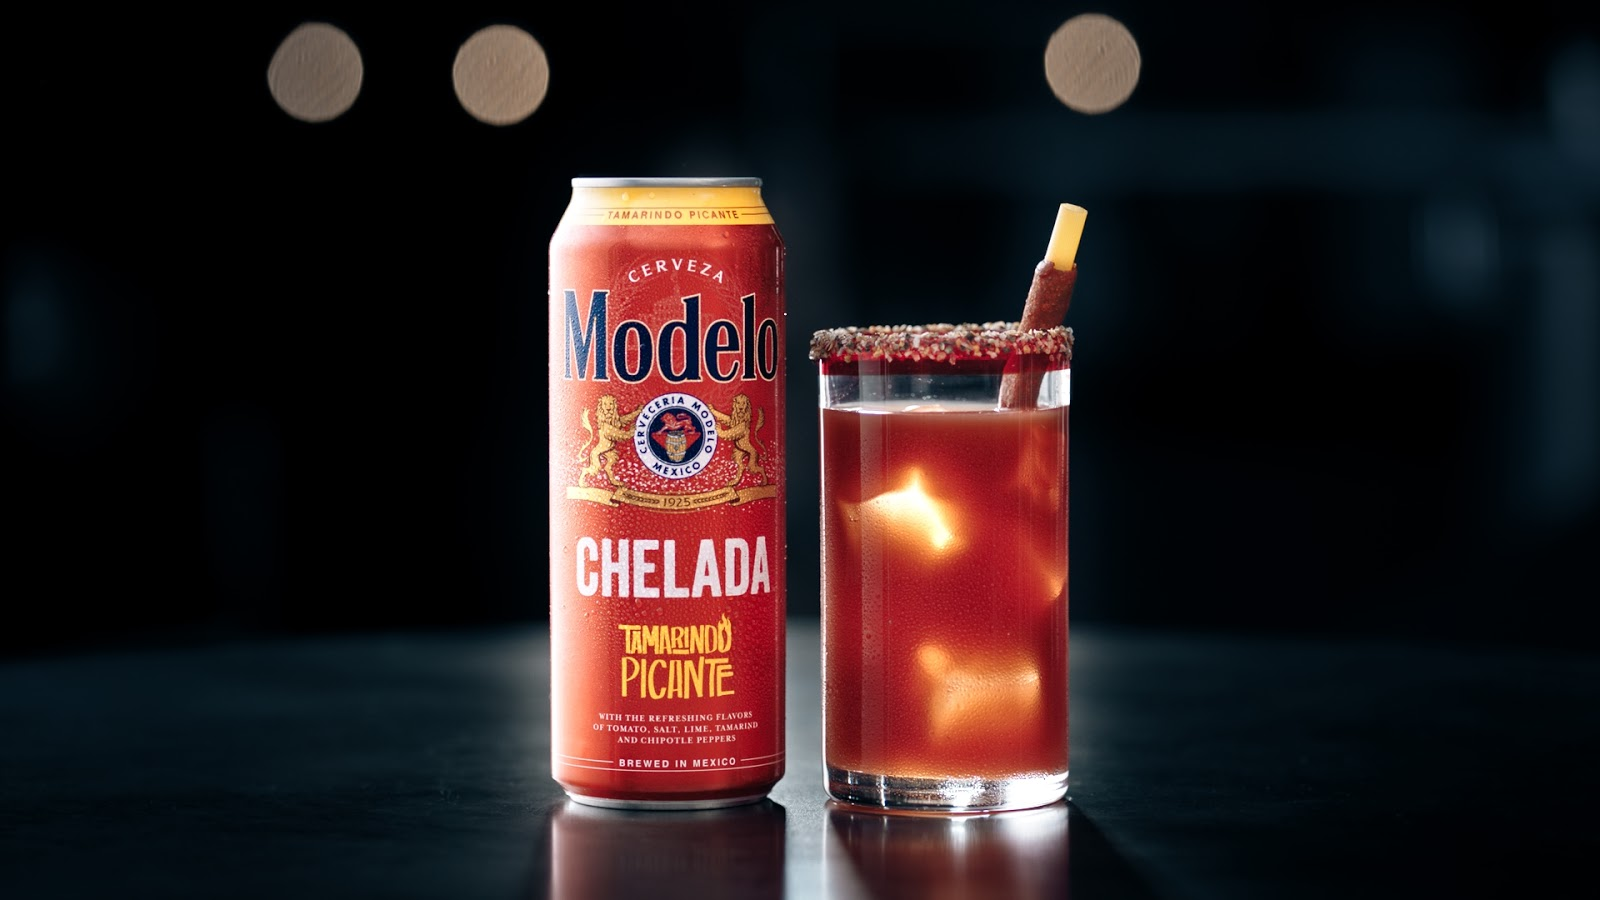 I love that the Modelo Chelada Tamarindo Picante saves me time by selling the drink in a ready to serve can.